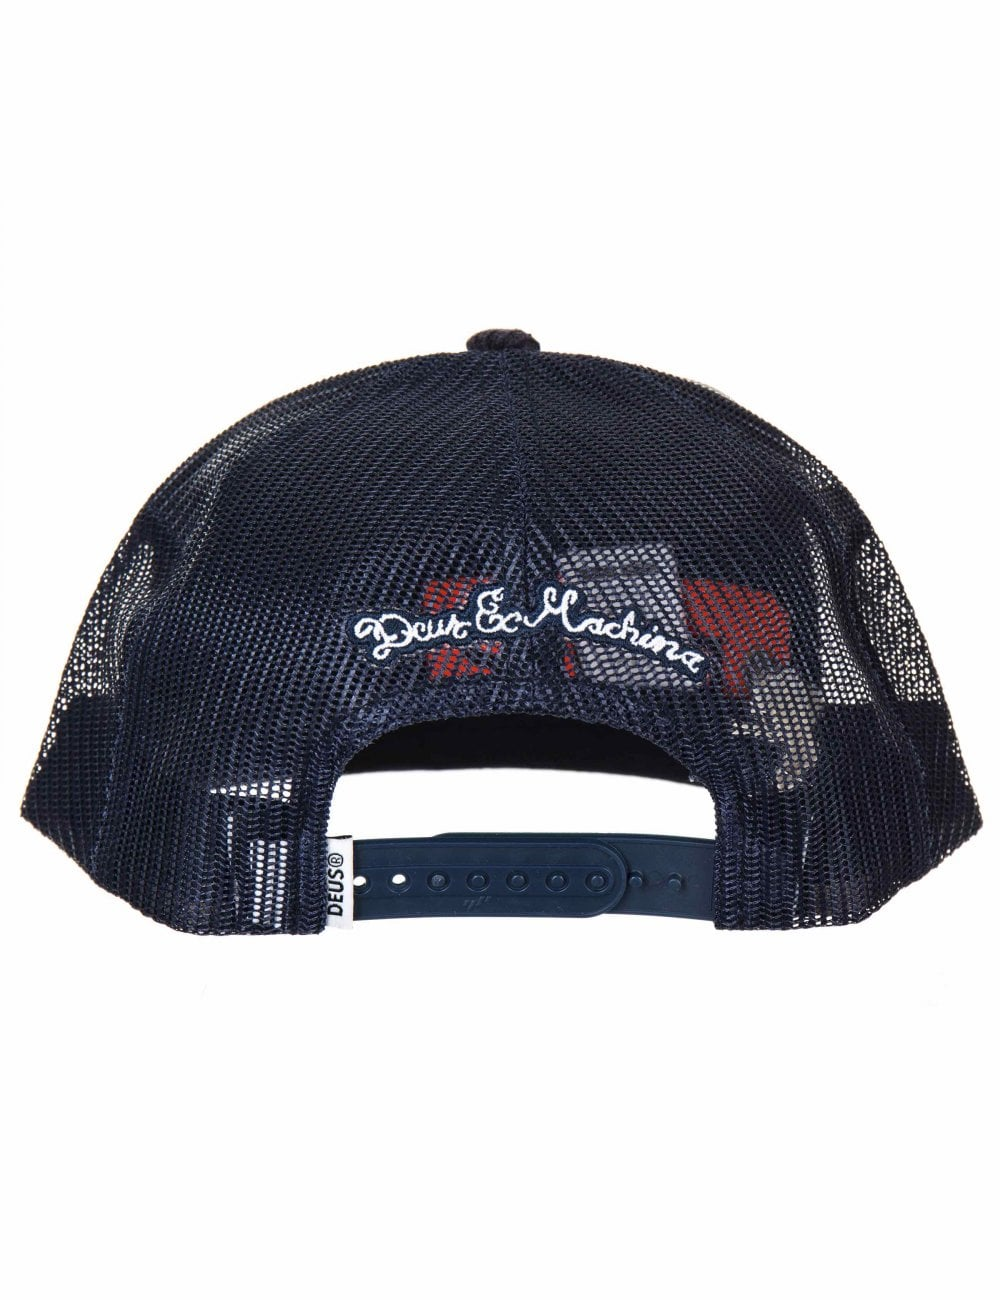 6a2db0f356b Deus Ex Machina Shop Trucker Hat - Navy - Accessories from Fat ...